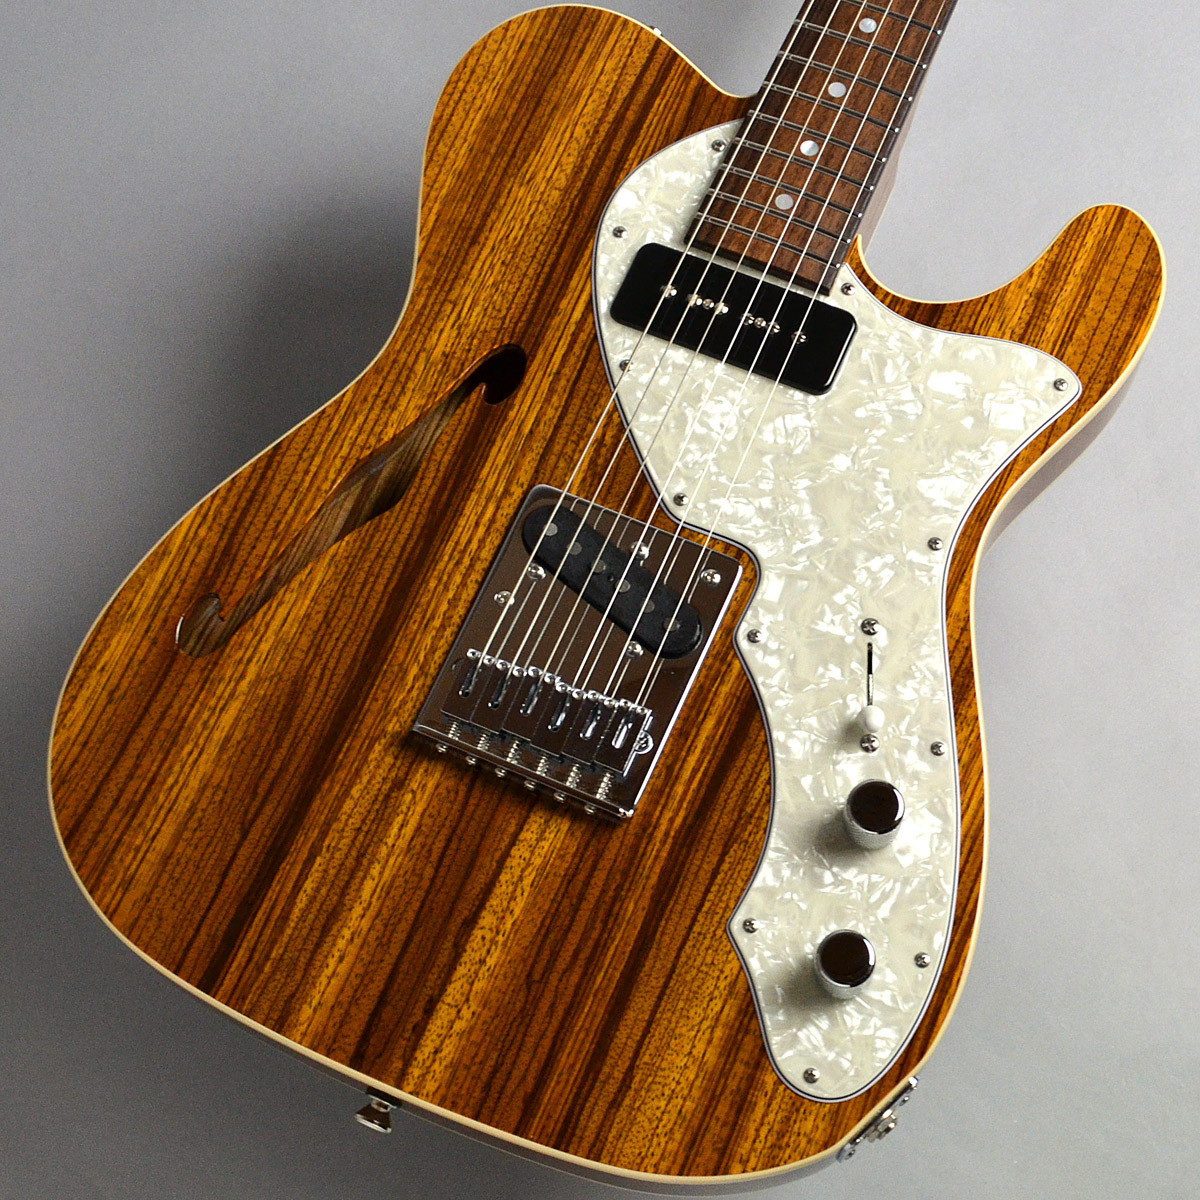 Freedom Custom Guitar Research Green Pepper / Vintage Natural エレキギター 【フリーダム】【新宿PePe店】【長期店頭展示品特別価格】